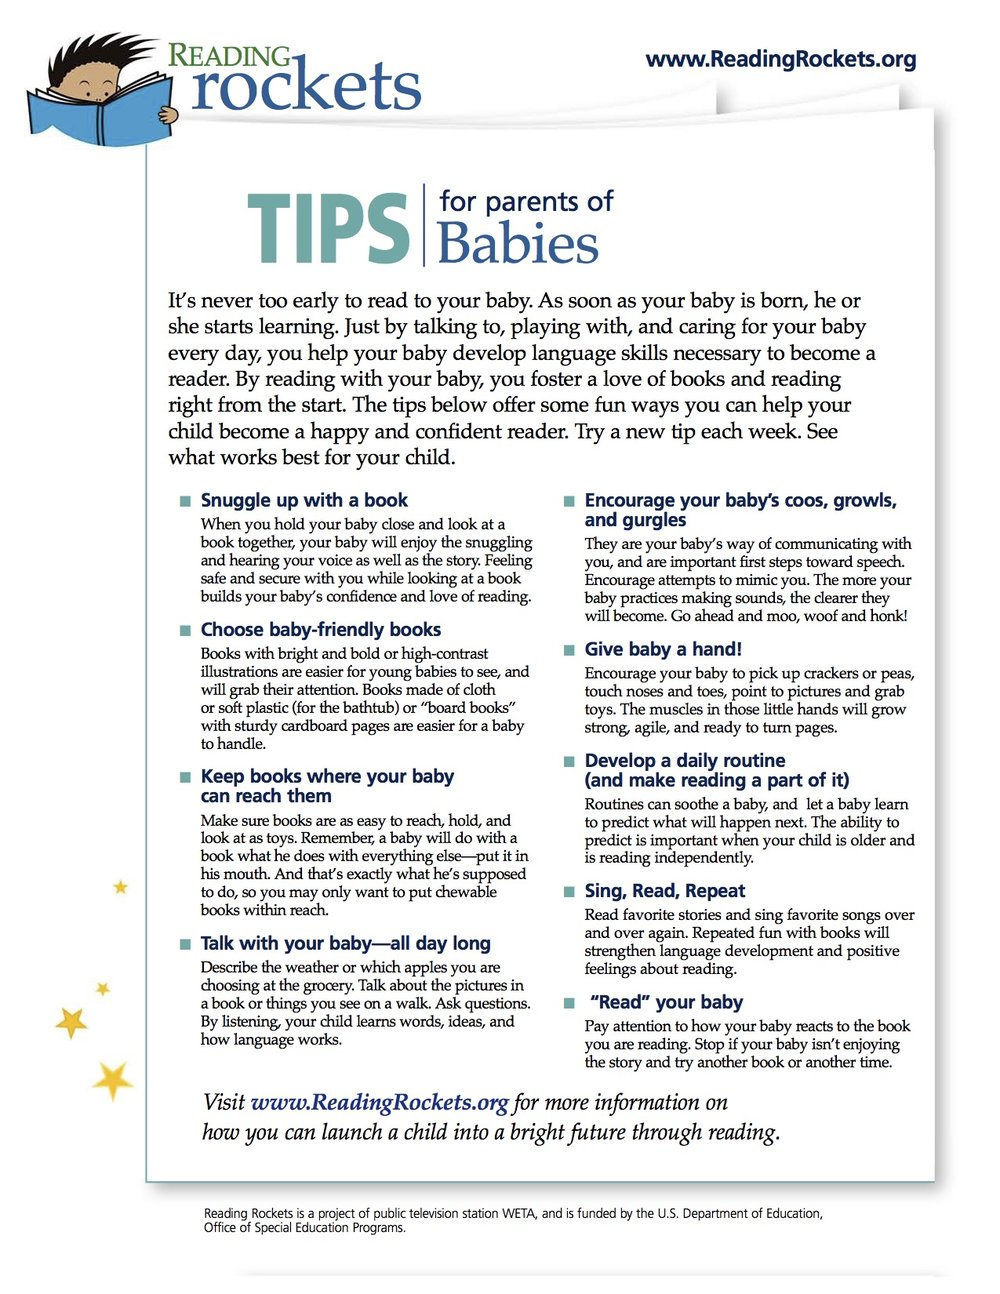 LLL Reading Rockets Reading Tips Babies English.jpg